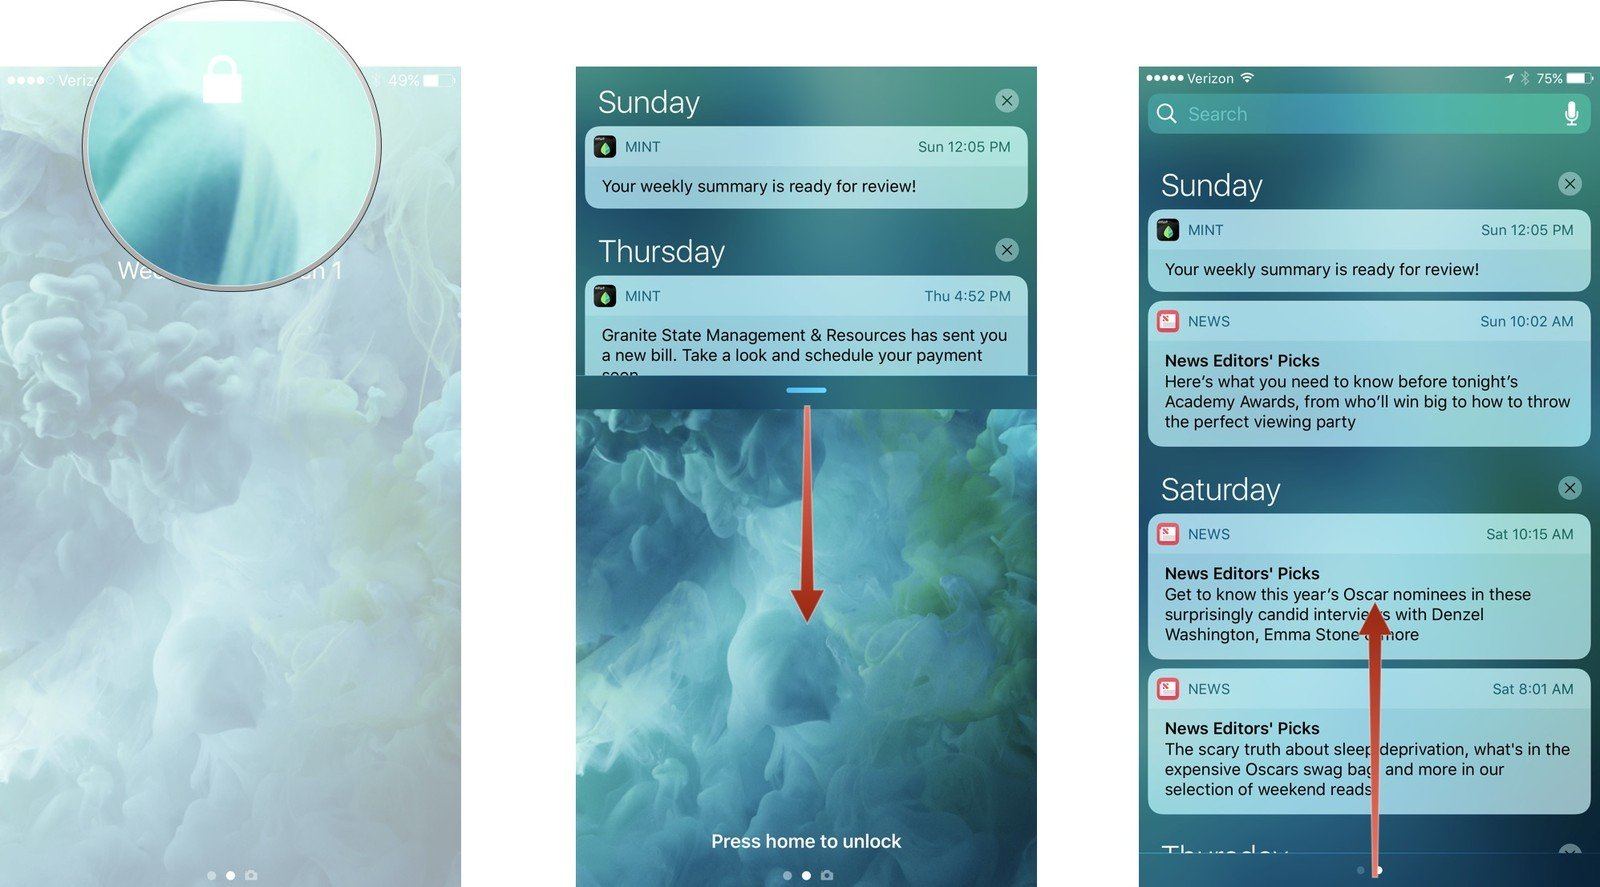 Swipe down from the top to access Notification Center. Swipe up from the bottom to hide Notification Center